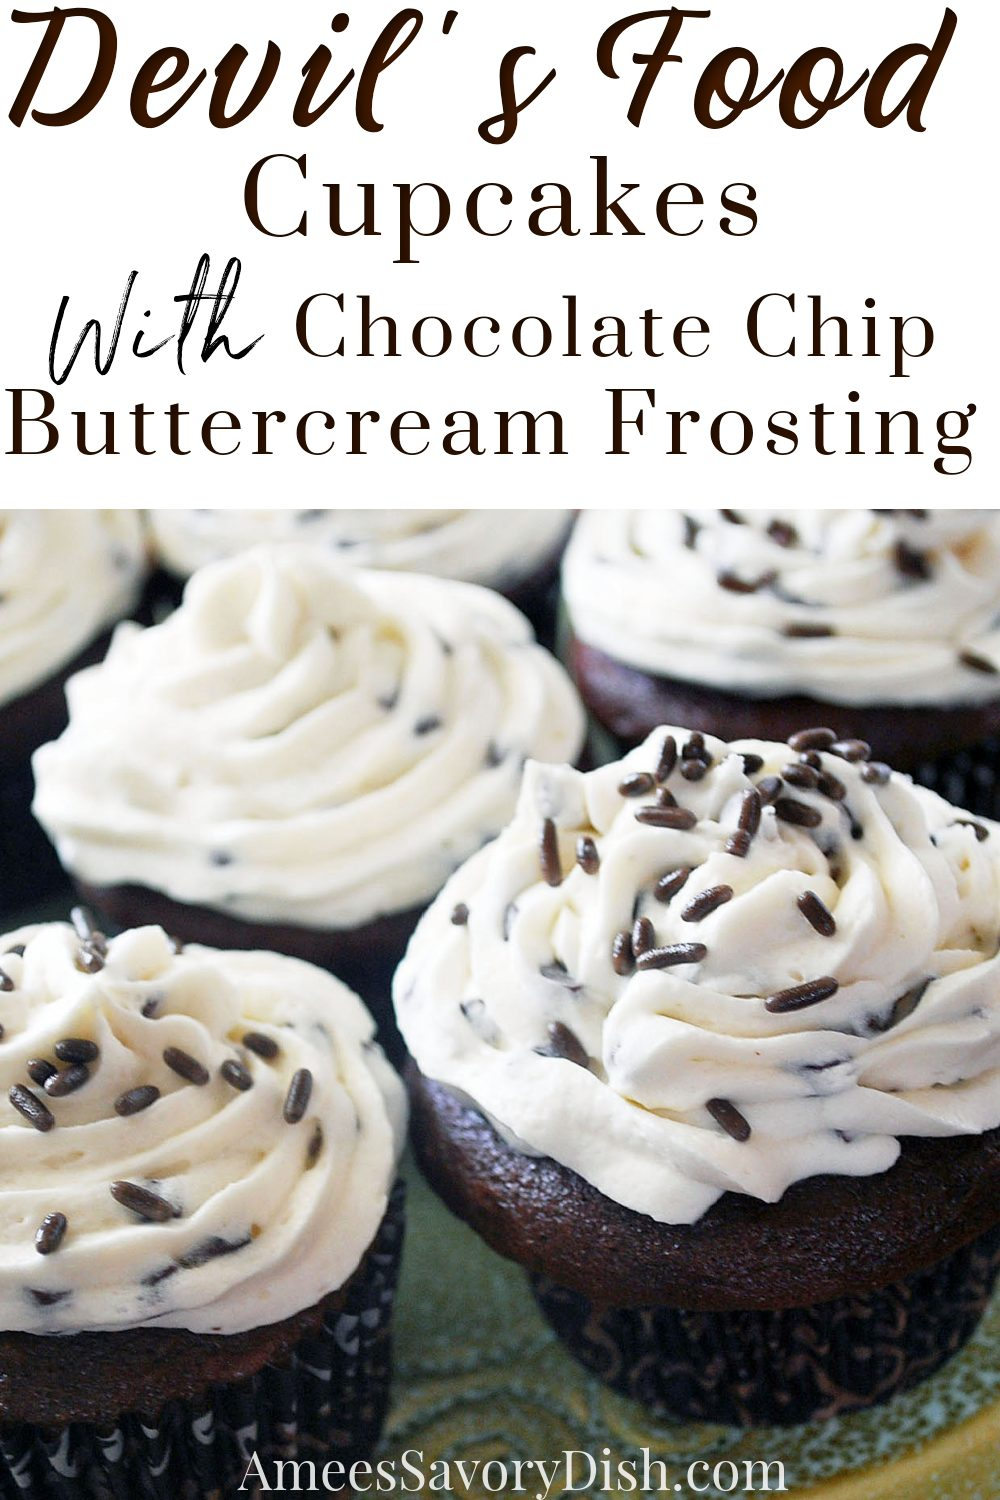 A simple recipe from scratch for super Moist Devil's Food Cupcakes with a rich and delicious buttercream chocolate chip frosting. #devilsfood #cupcakes #chocolatecupcakes #chocolatechipfrosting #buttercreamfrosting via @Ameessavorydish